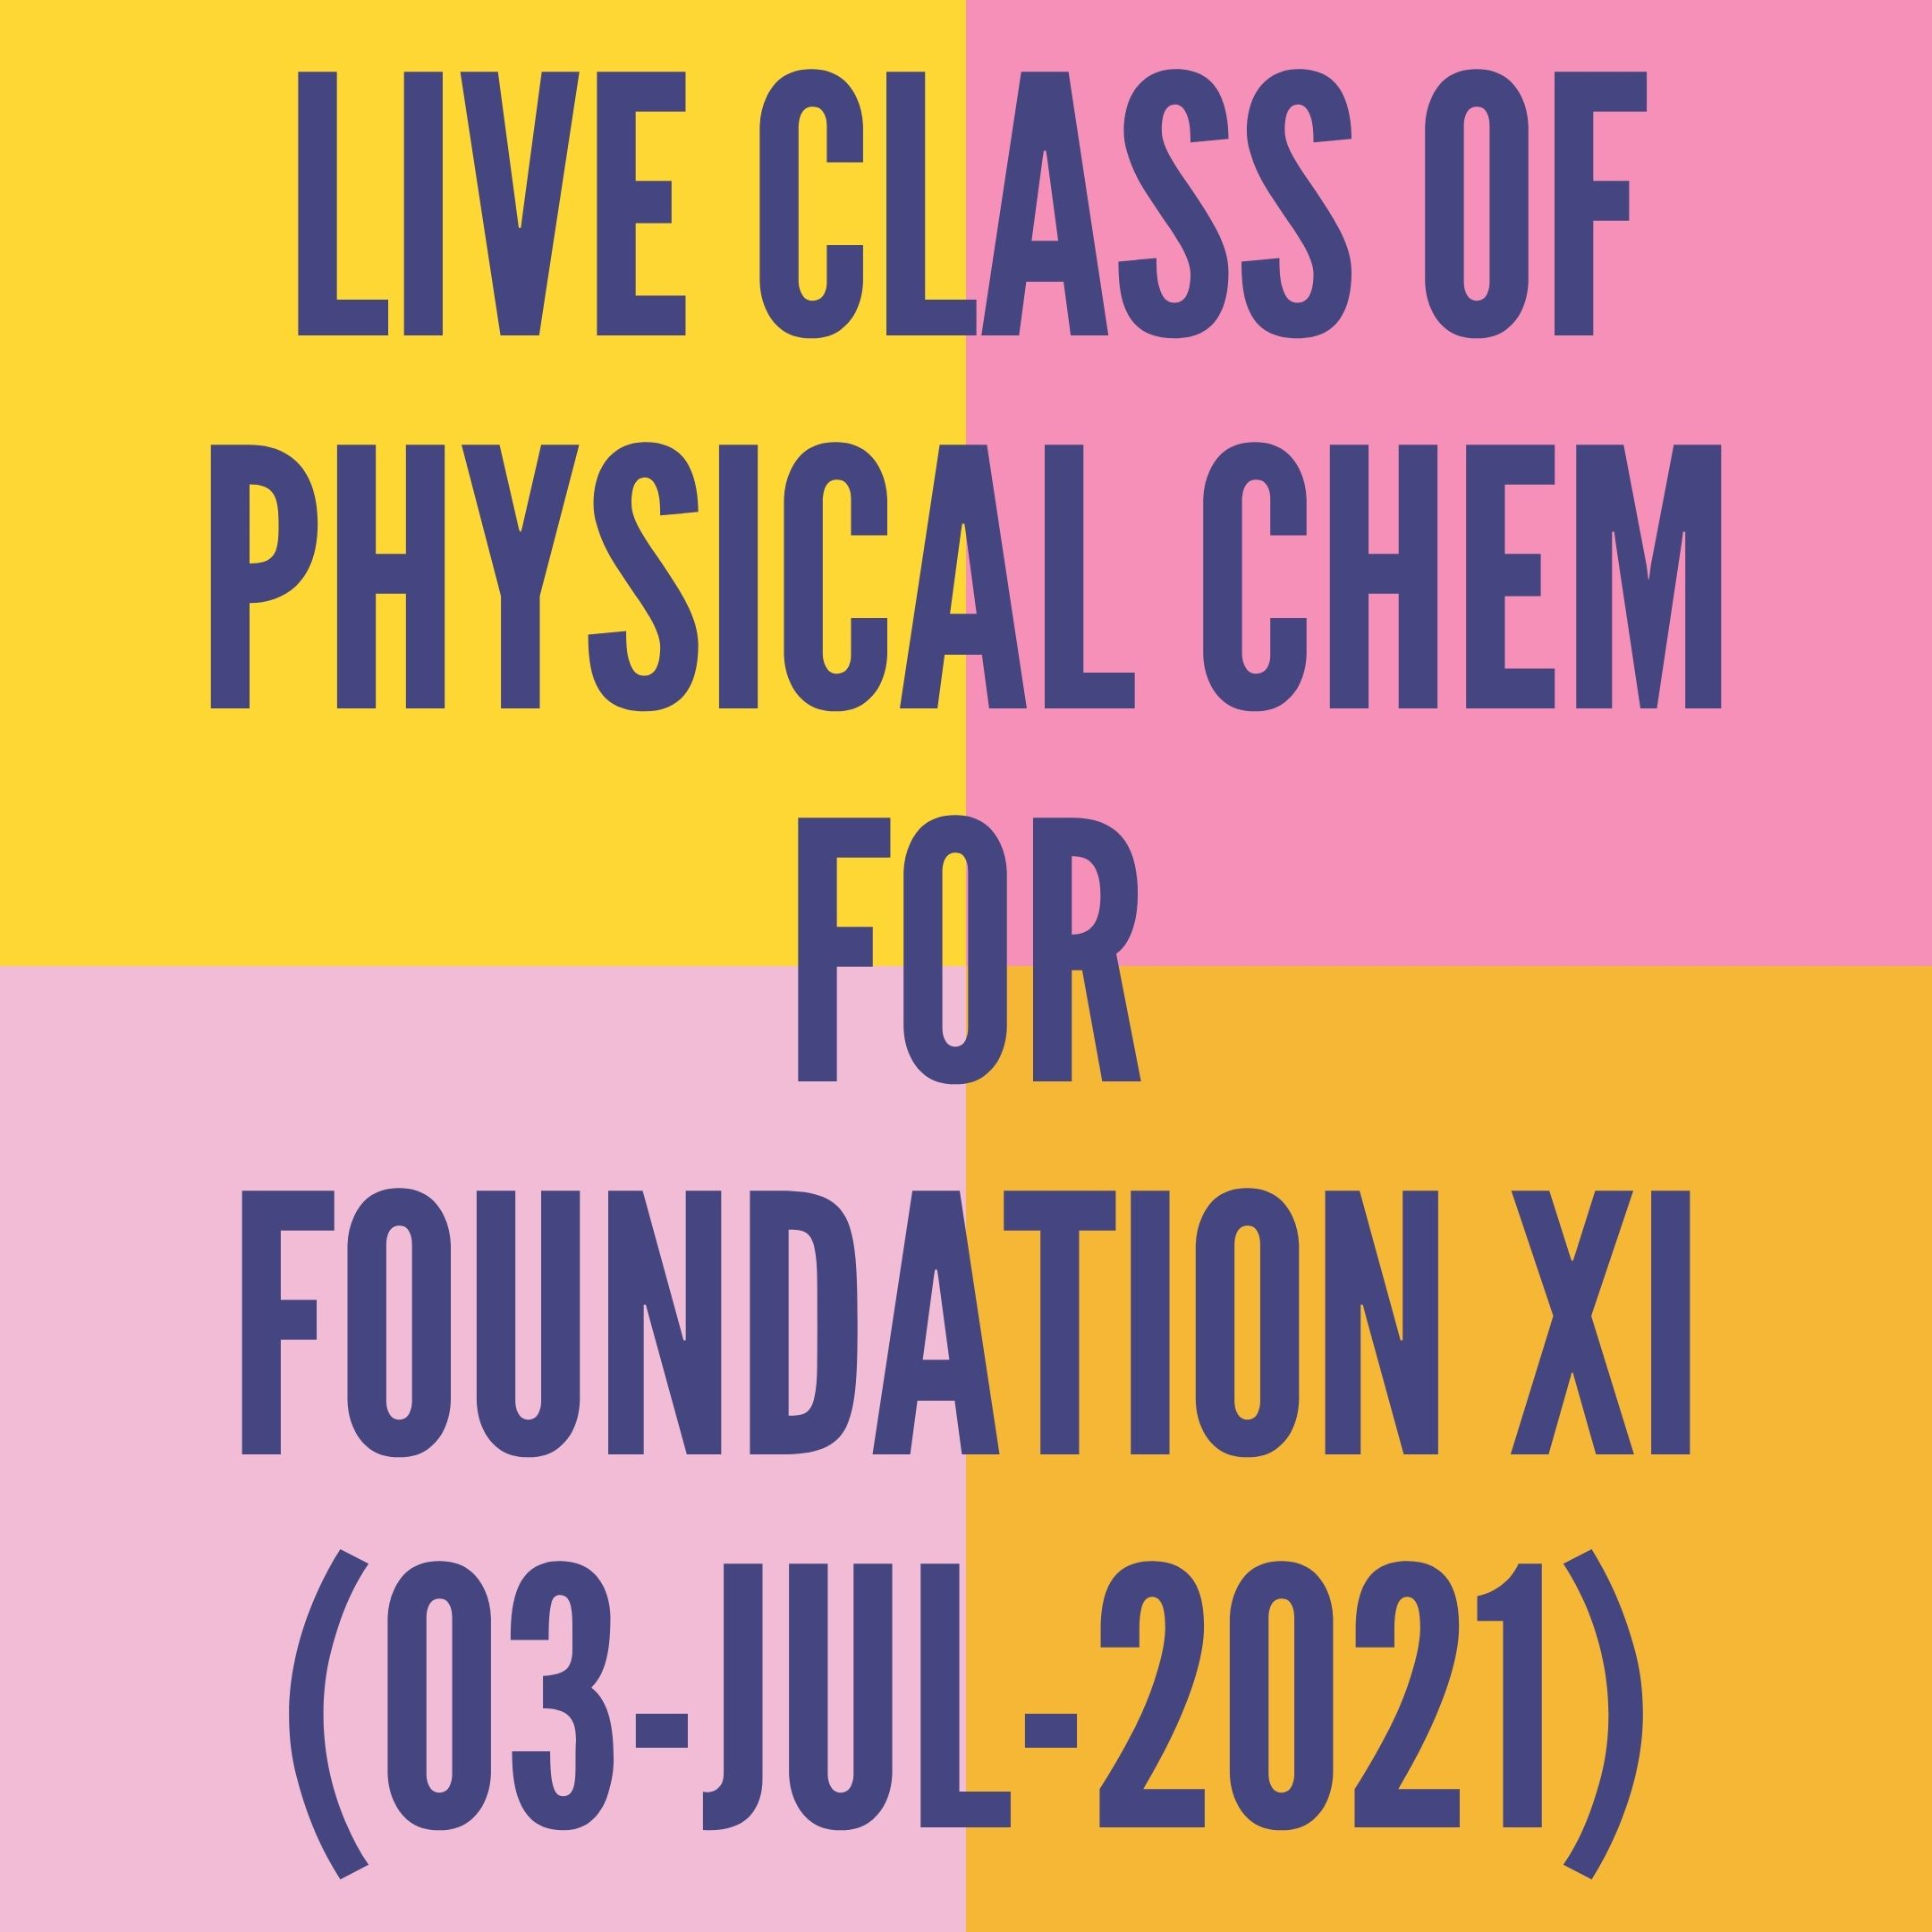 LIVE CLASS OF PHYSICAL CHEM FOR FOUNDATION XI (03-JUL-2021) CONCENTRATION OF SOLUTION